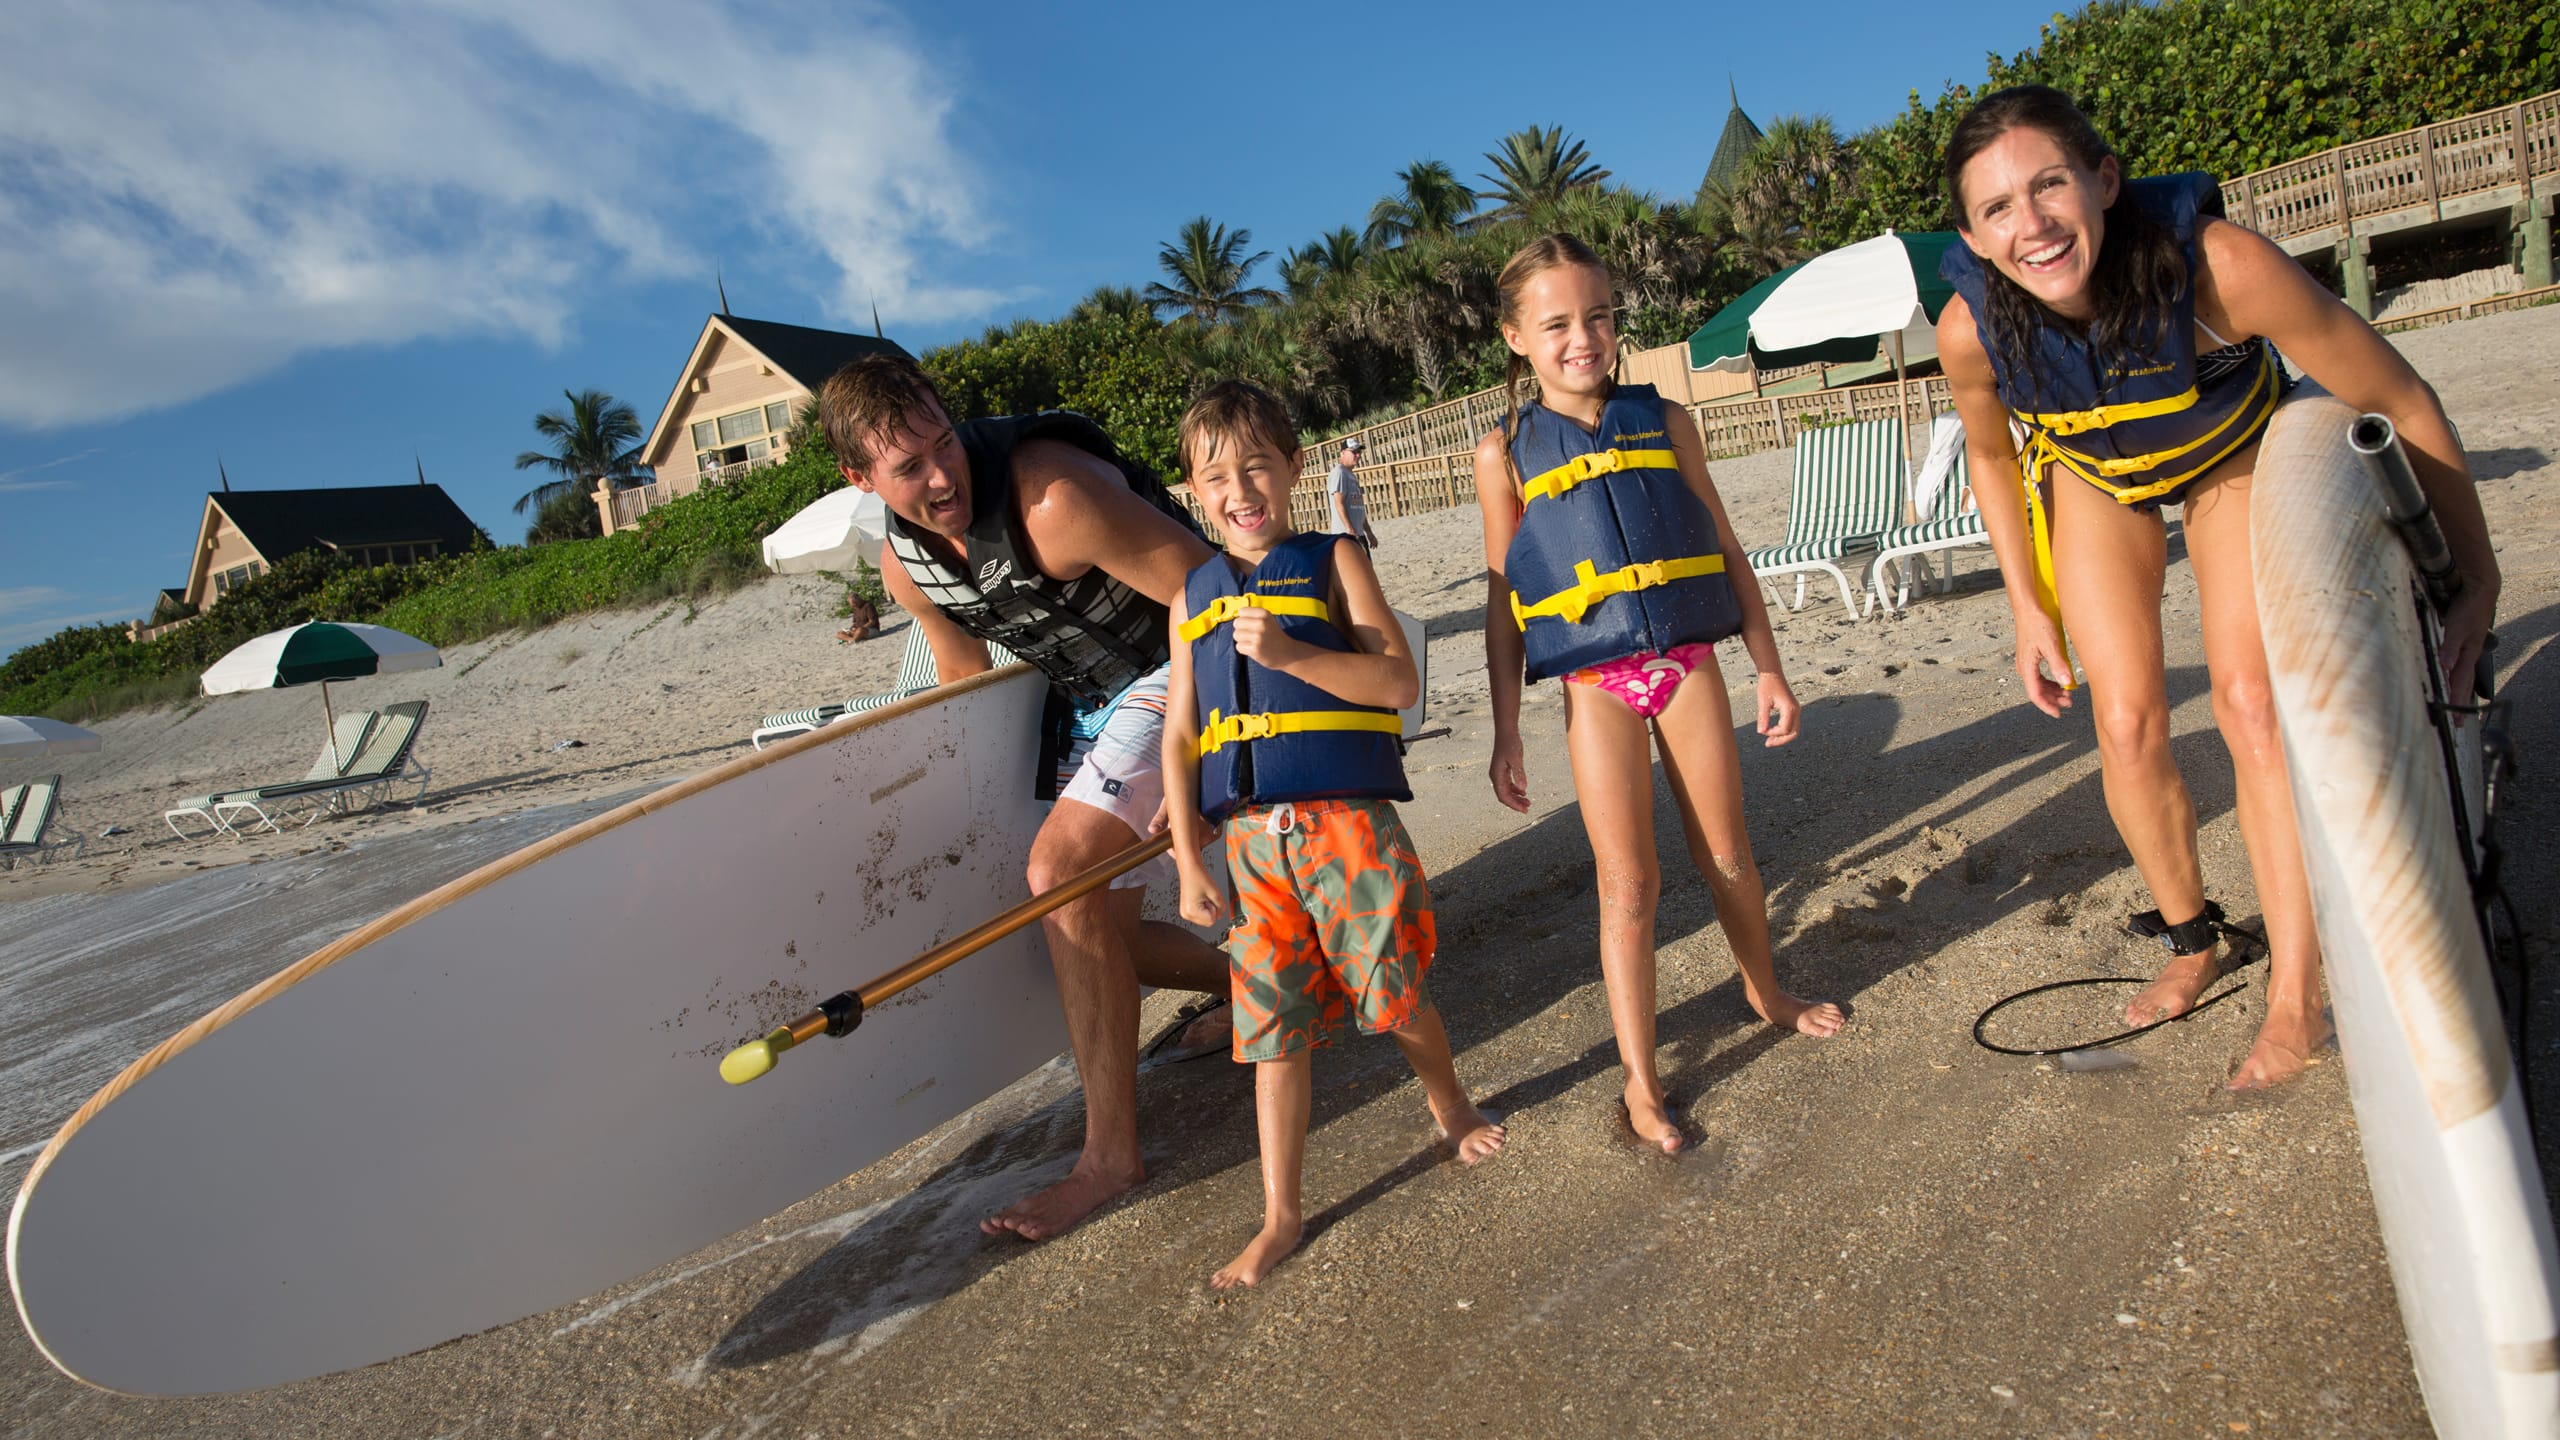 A mother, father, son and daughter with paddleboards on a beach